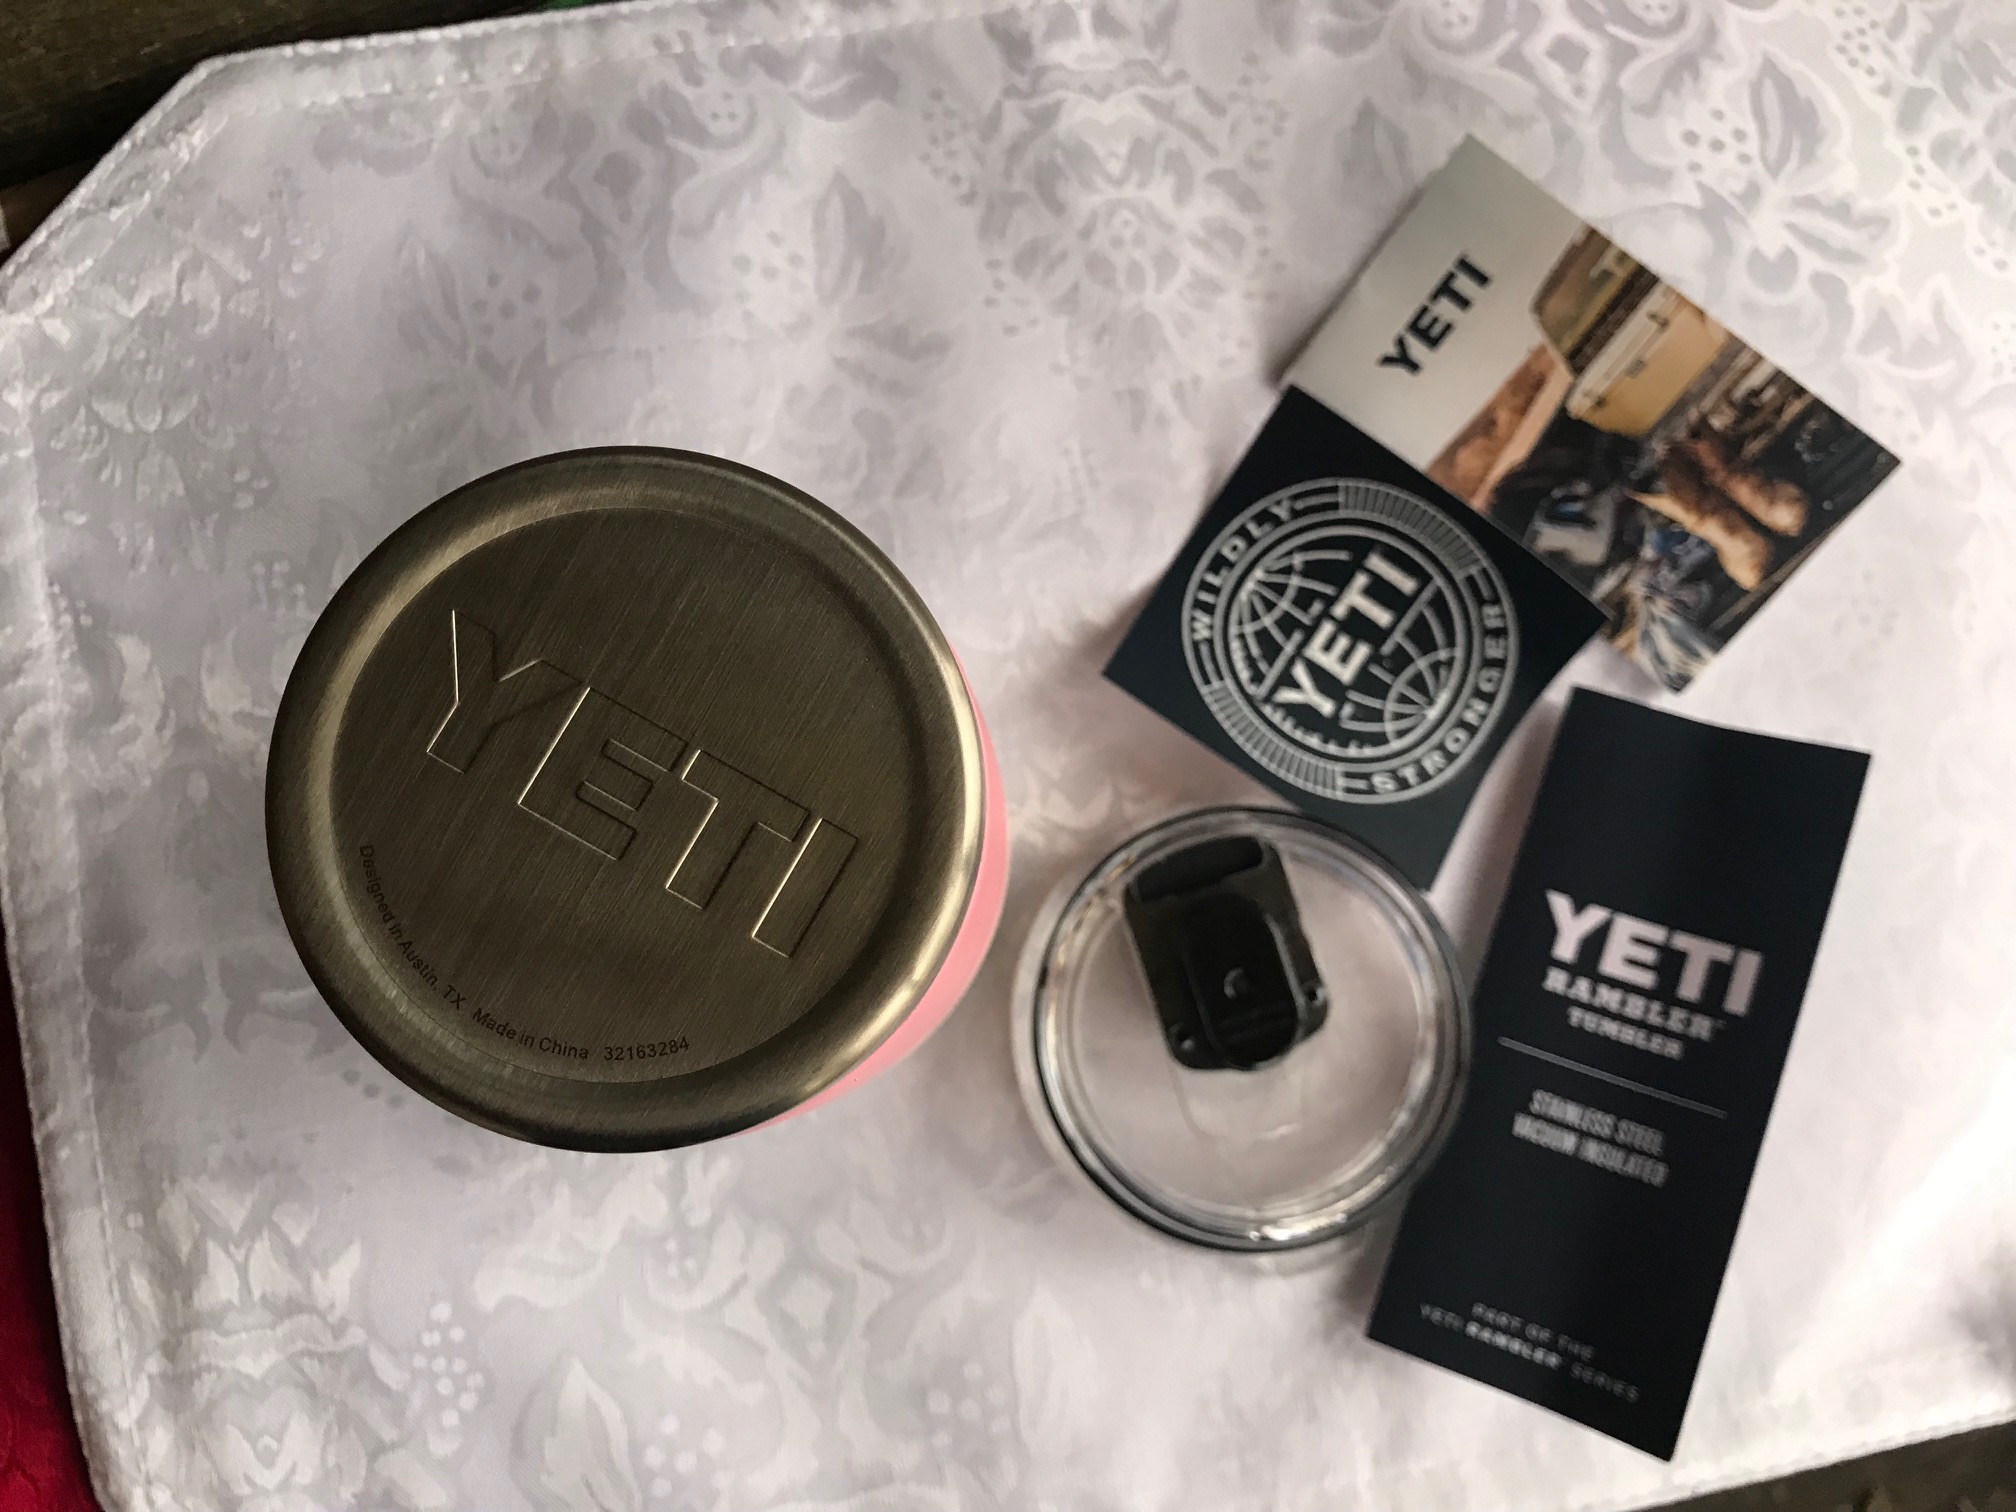 Pink Yeti Rambler 20 oz. Tumbler: Lead Free In All Accessible Components